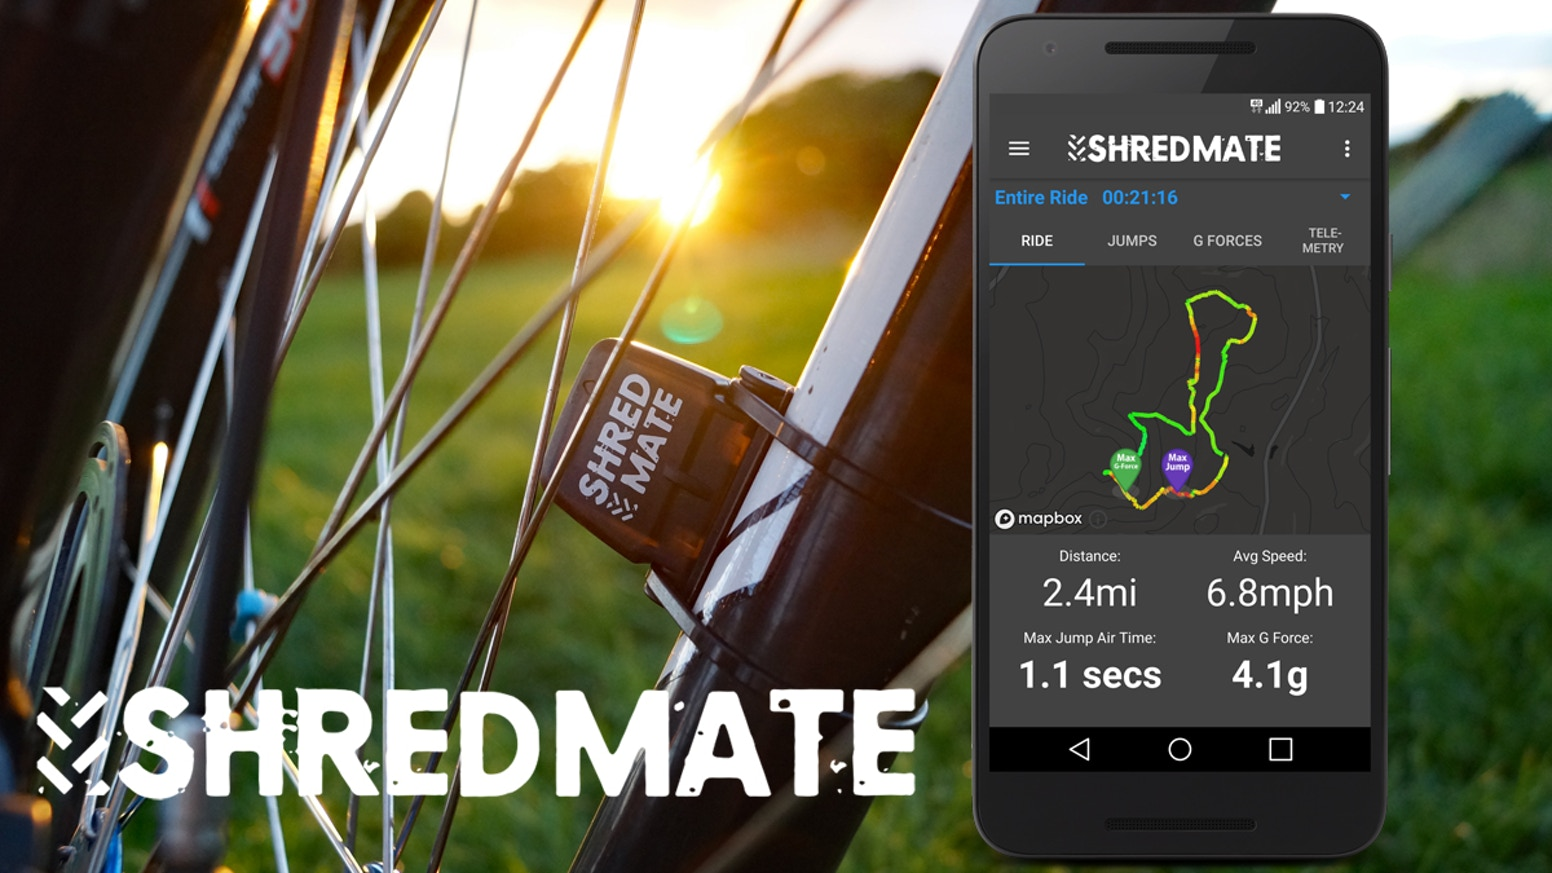 ShredMate is the first cycle computer for mountain bikes that measures jumps, g-forces and detects rough trails automatically.